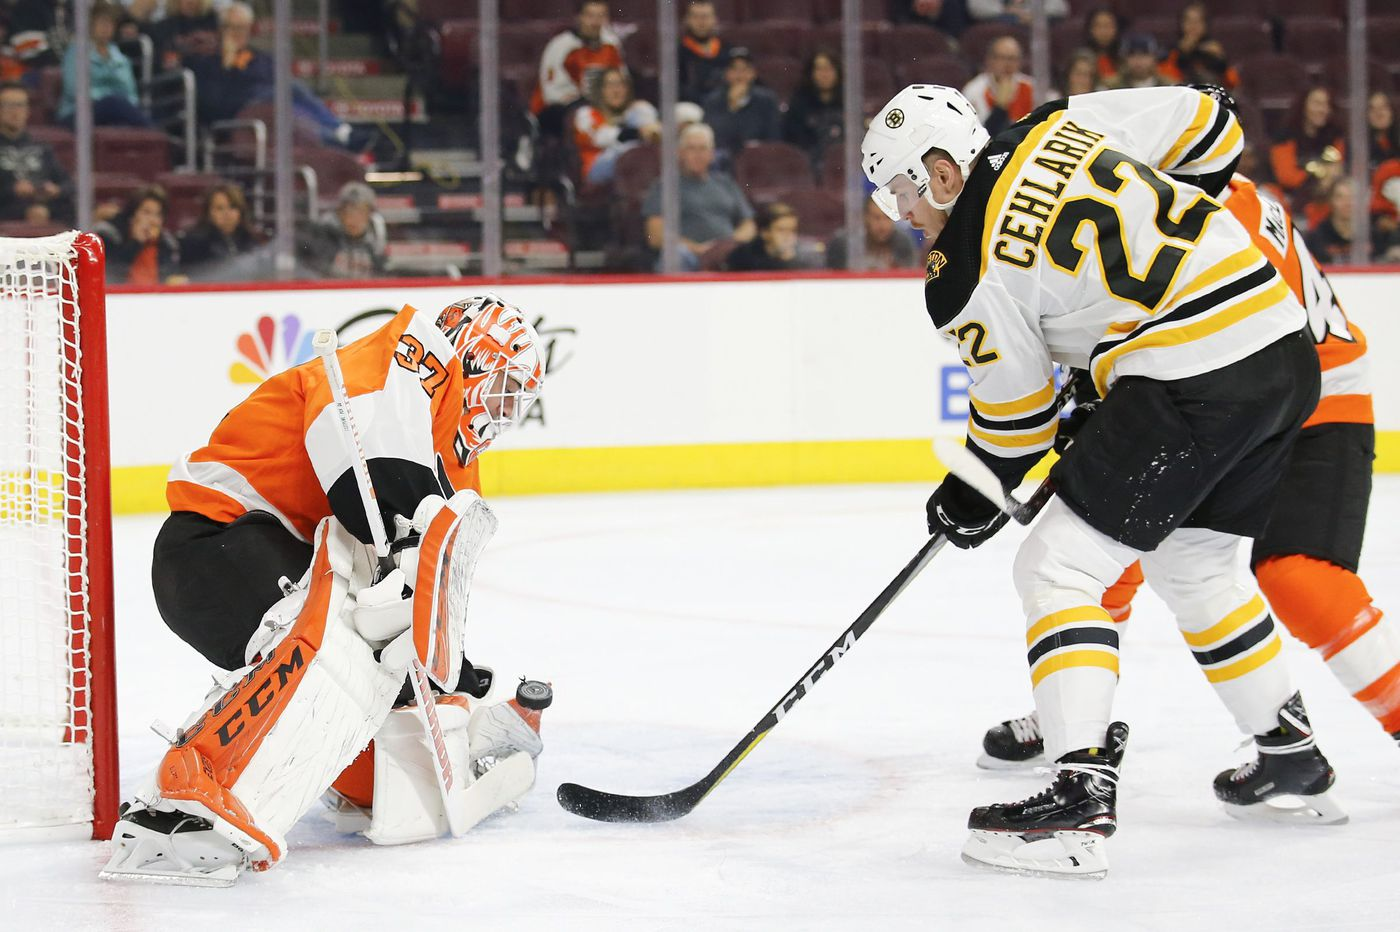 Flyers goalie Brian Elliott is tested in 4-3 loss to Bruins